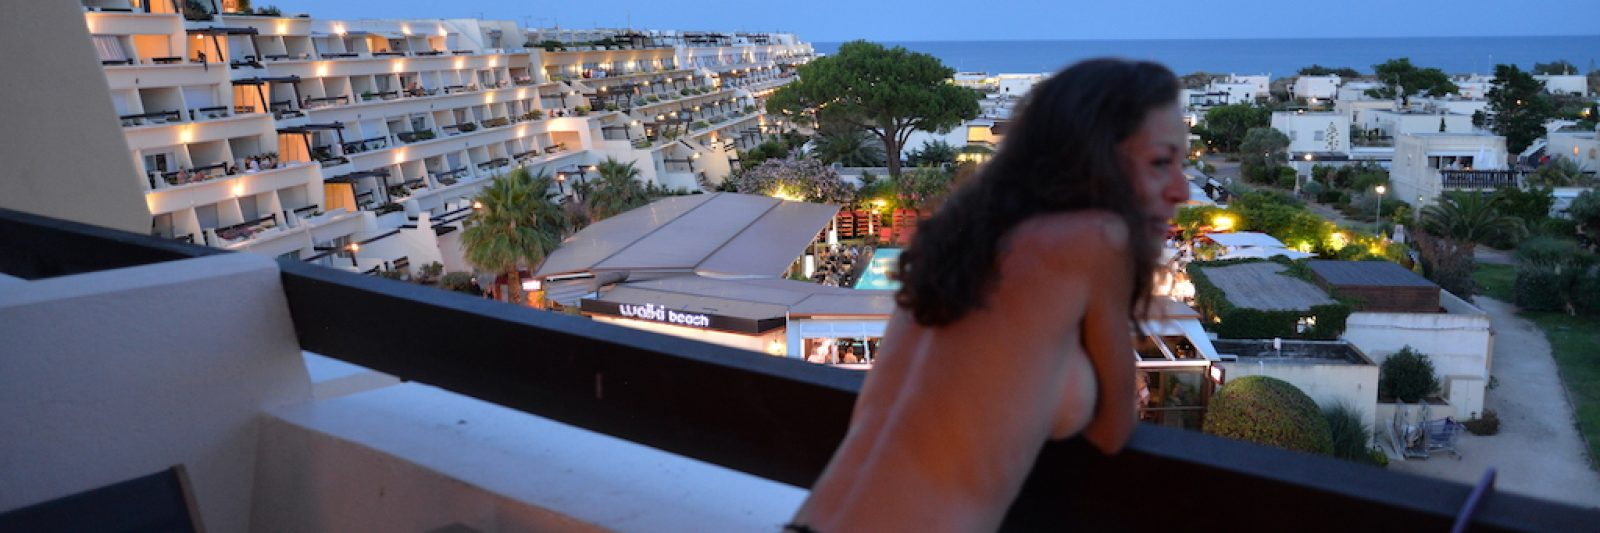 Cap d'Agde Naturist Port Nature Sea View naked balcony